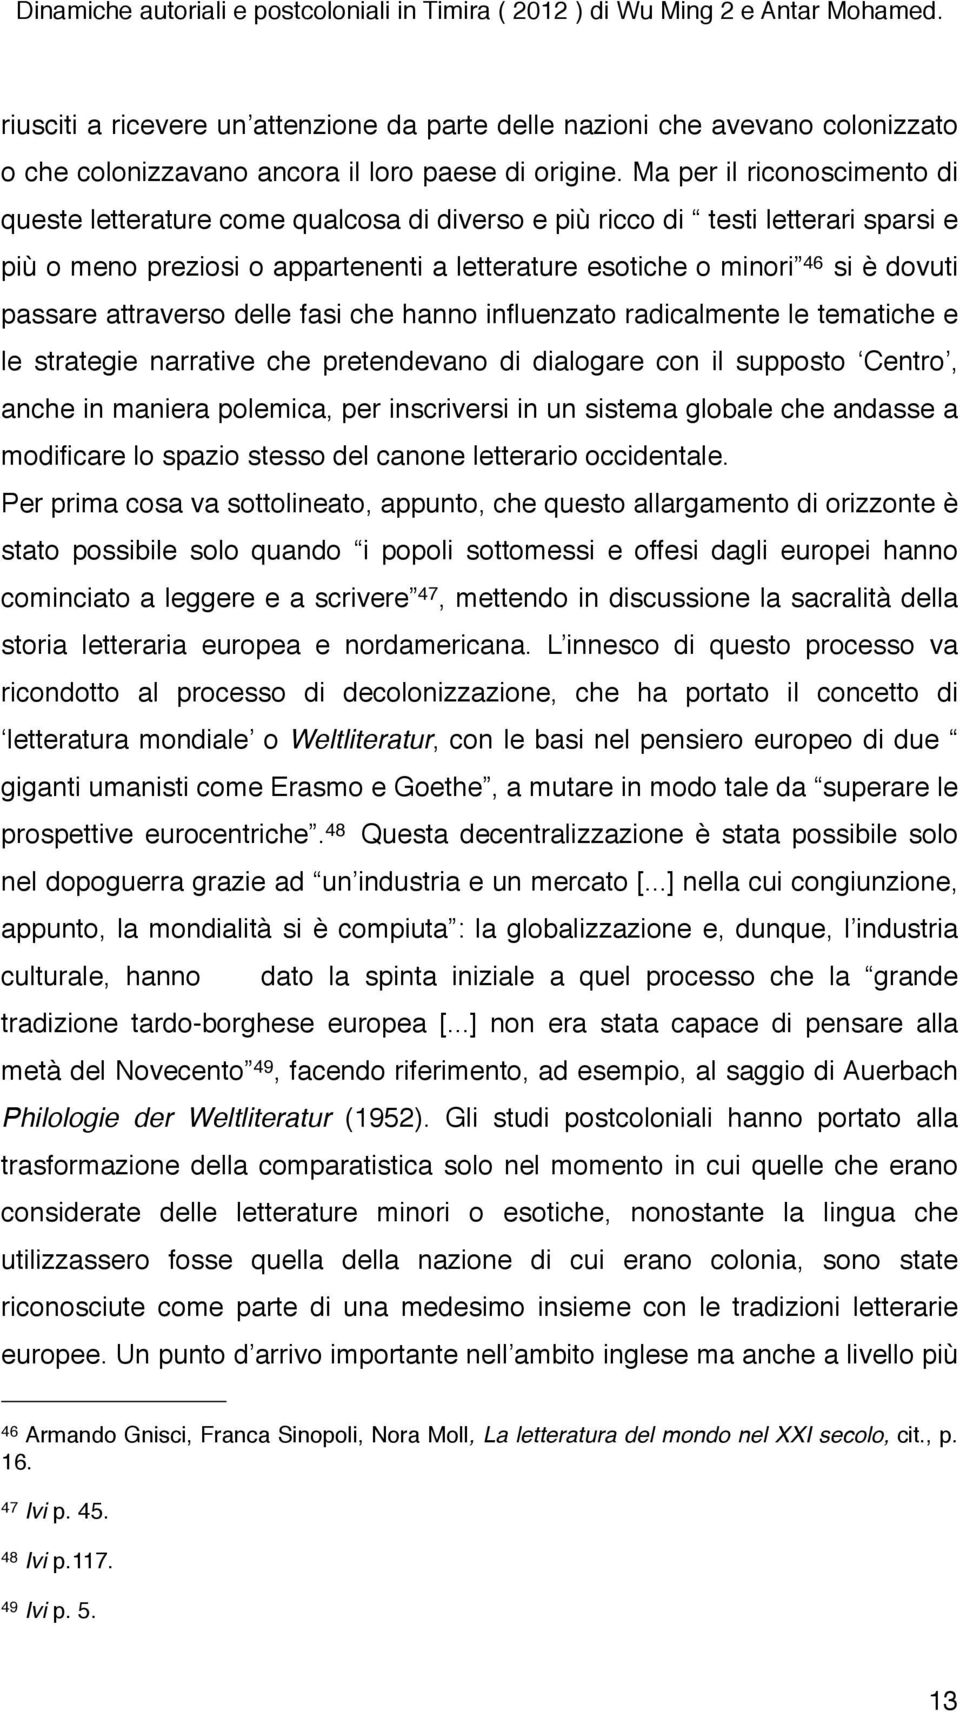 passare attraverso delle fasi che hanno influenzato radicalmente le tematiche e le strategie narrative che pretendevano di dialogare con il supposto Centro, anche in maniera polemica, per inscriversi